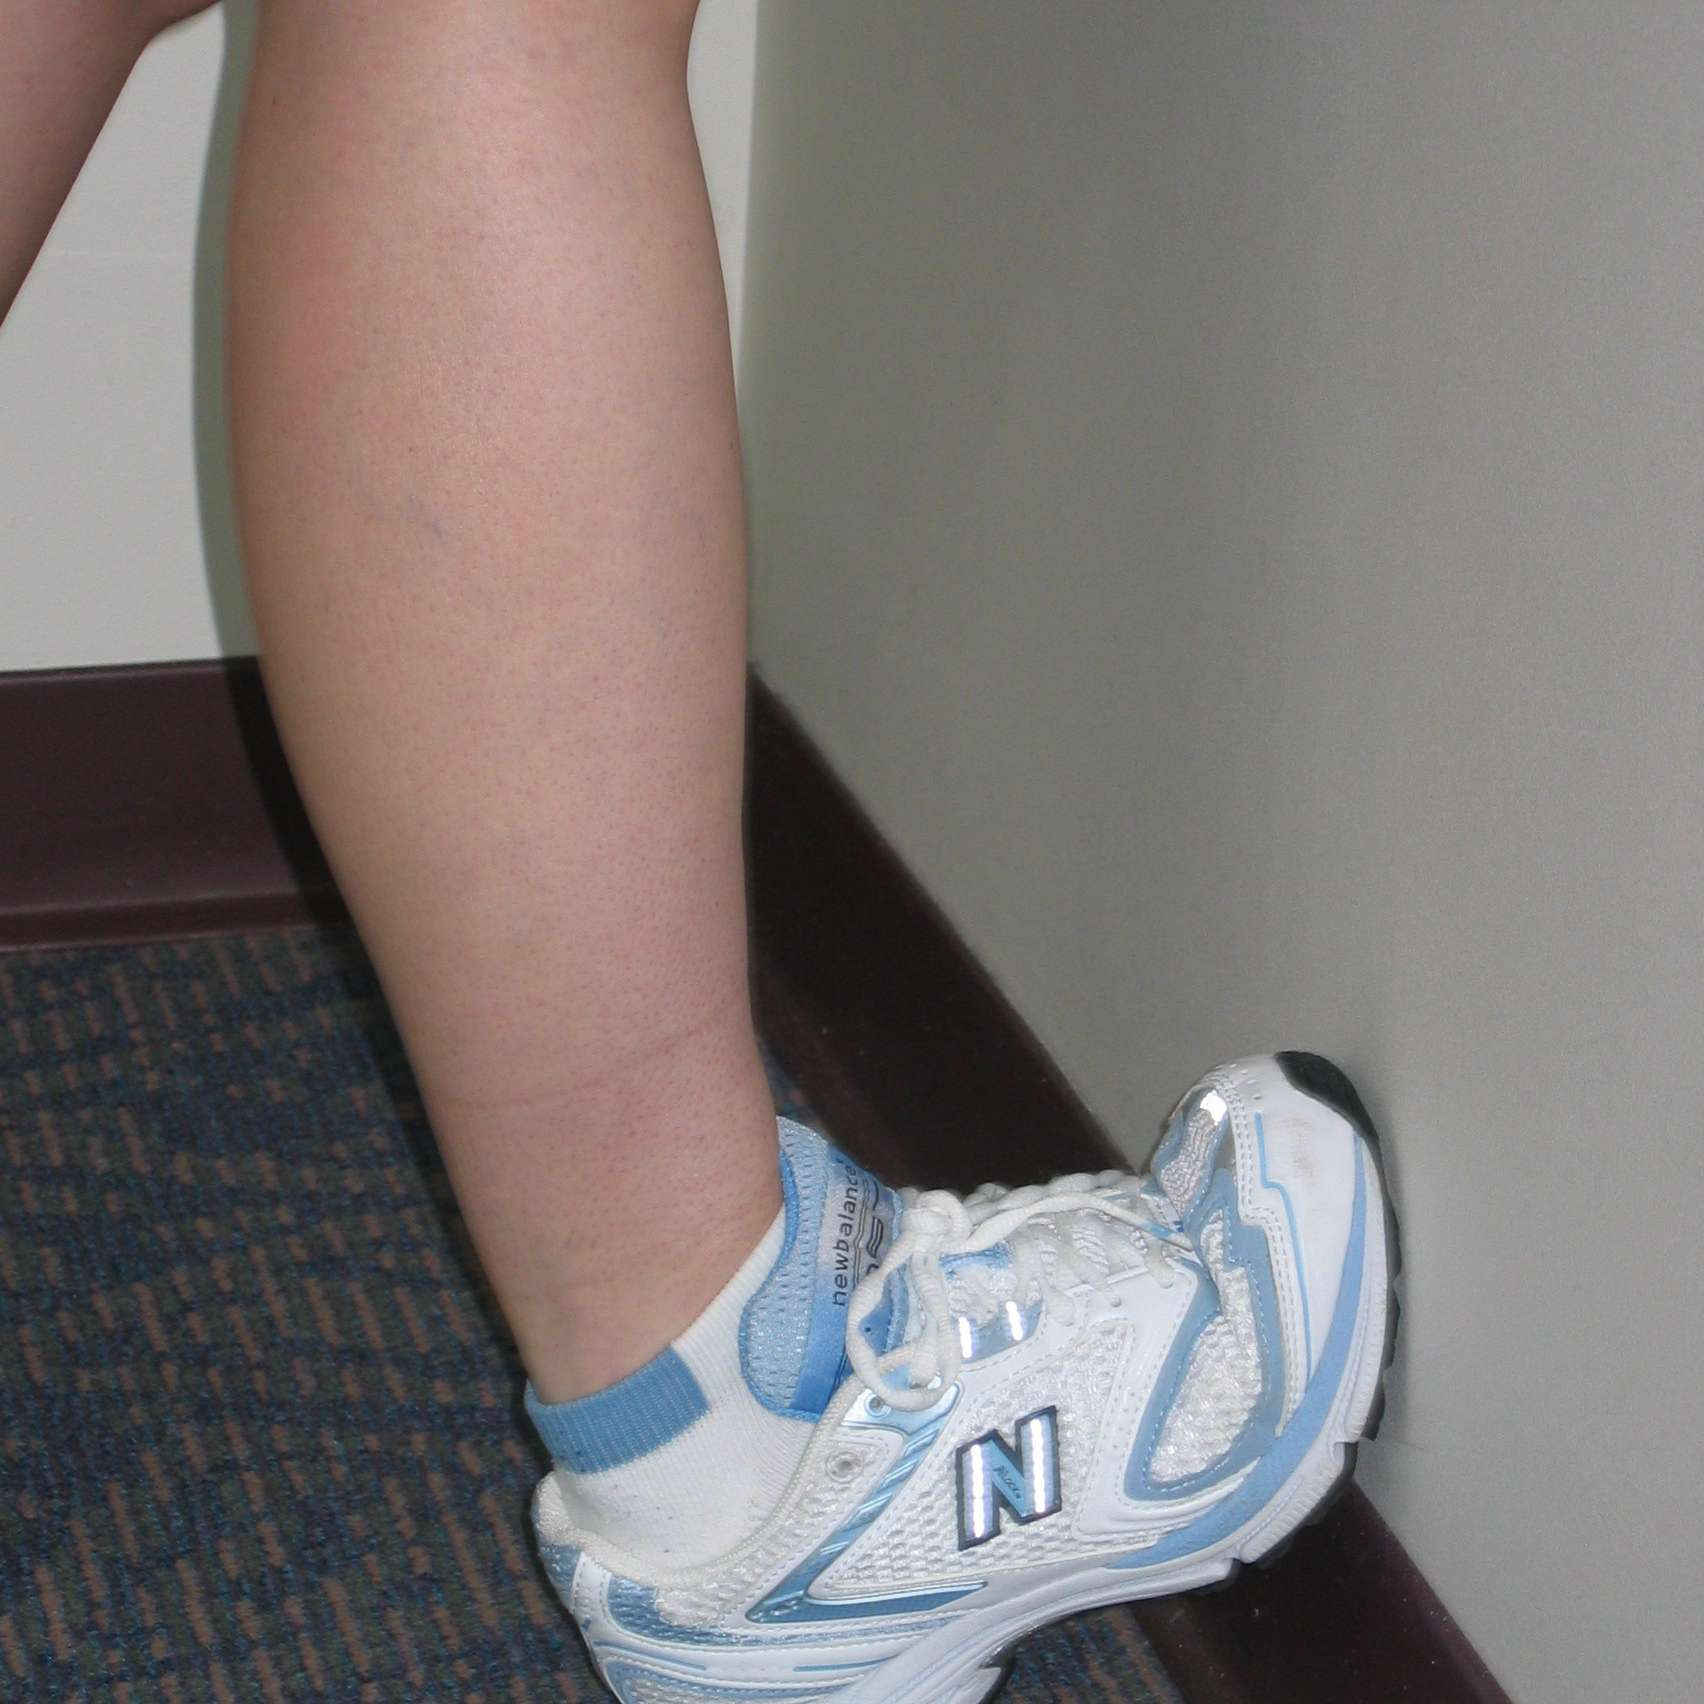 Standing ankle dorsiflexion stretch against wall.